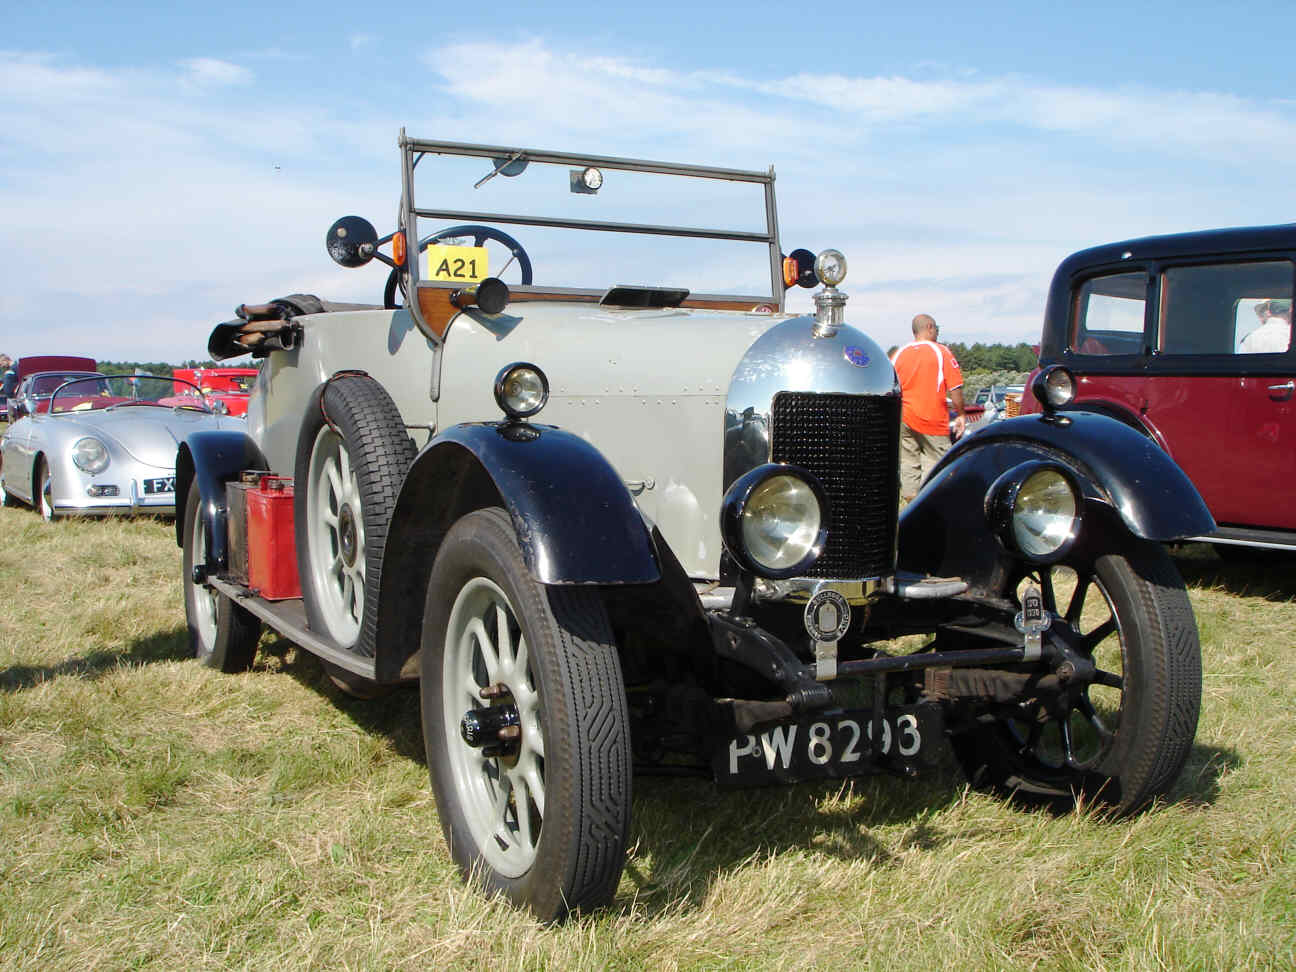 Oxford Car And Truck >> Morris Cowley | Tractor & Construction Plant Wiki | FANDOM powered by Wikia